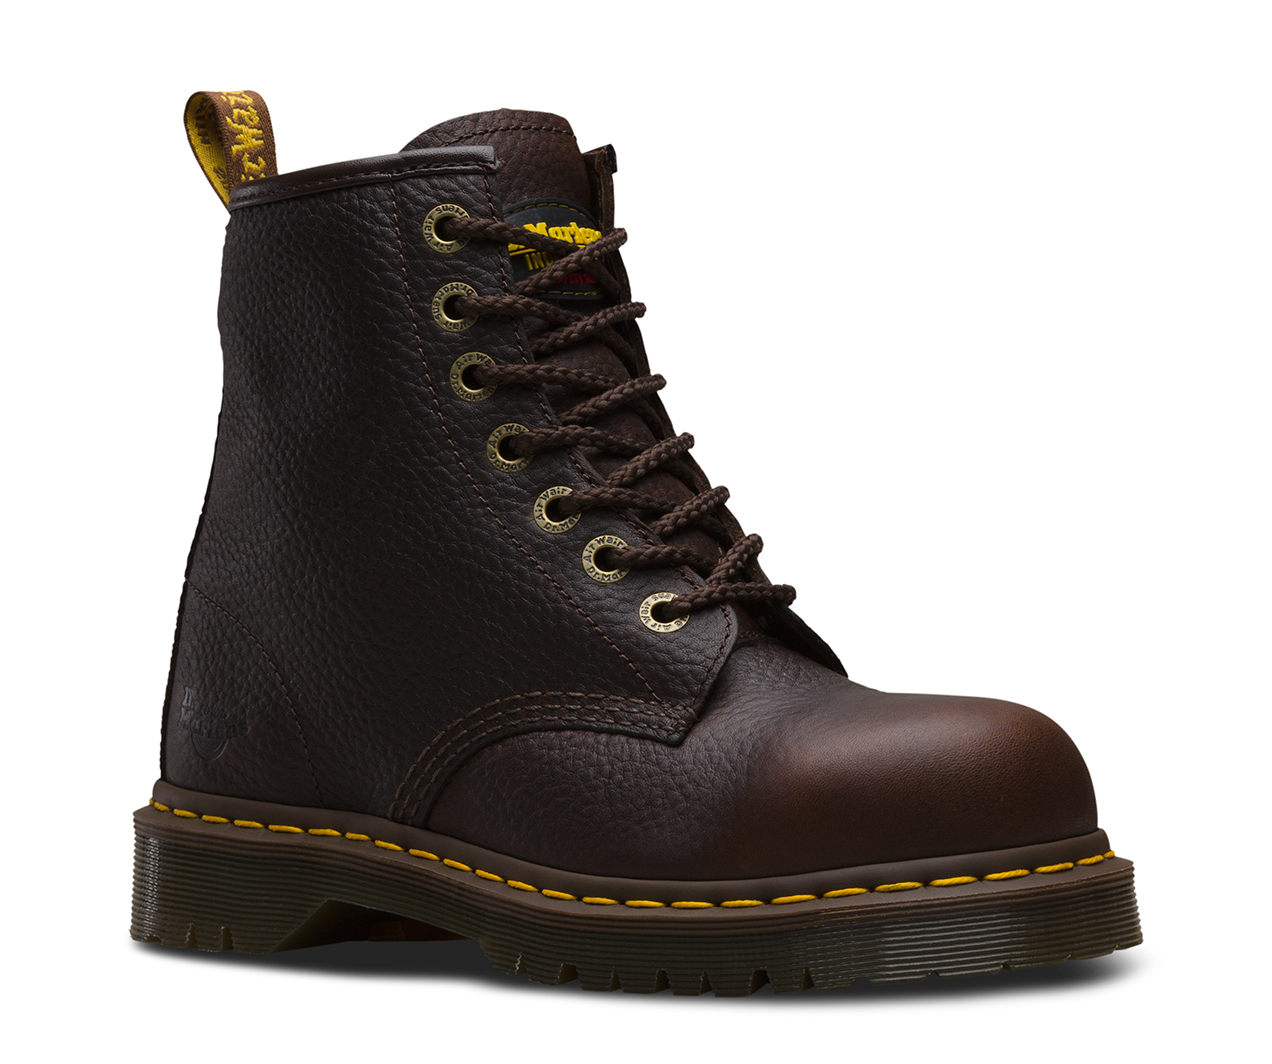 Icon 7b10 Steel Toe Work Boots Amp Shoes The Official Us